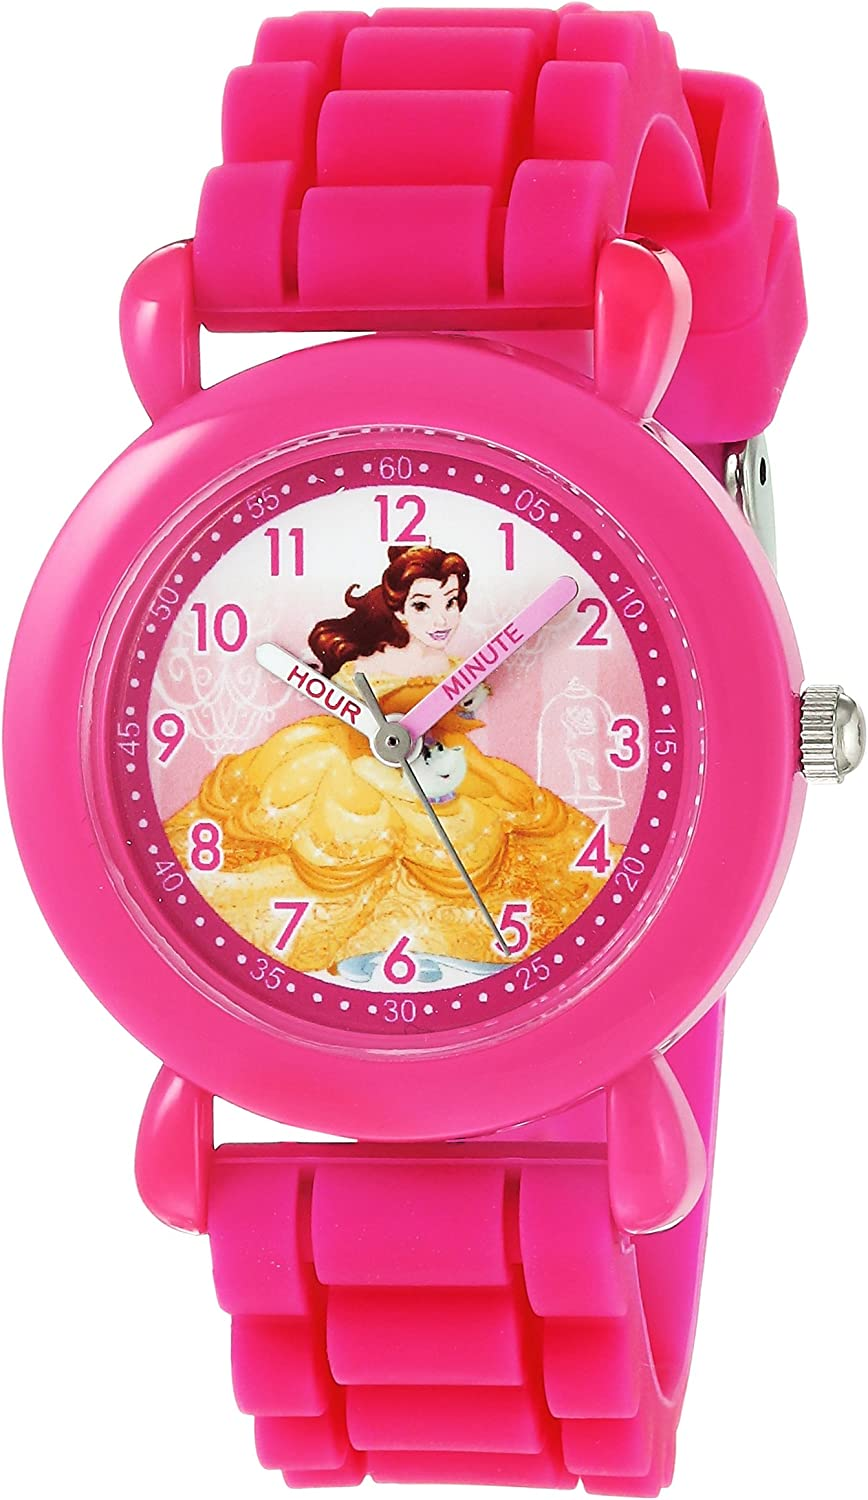 DISNEY Girls Princess Belle Analog-Quartz Watch with Silicone Strap, Pink, 16 (Model: WDS000146)